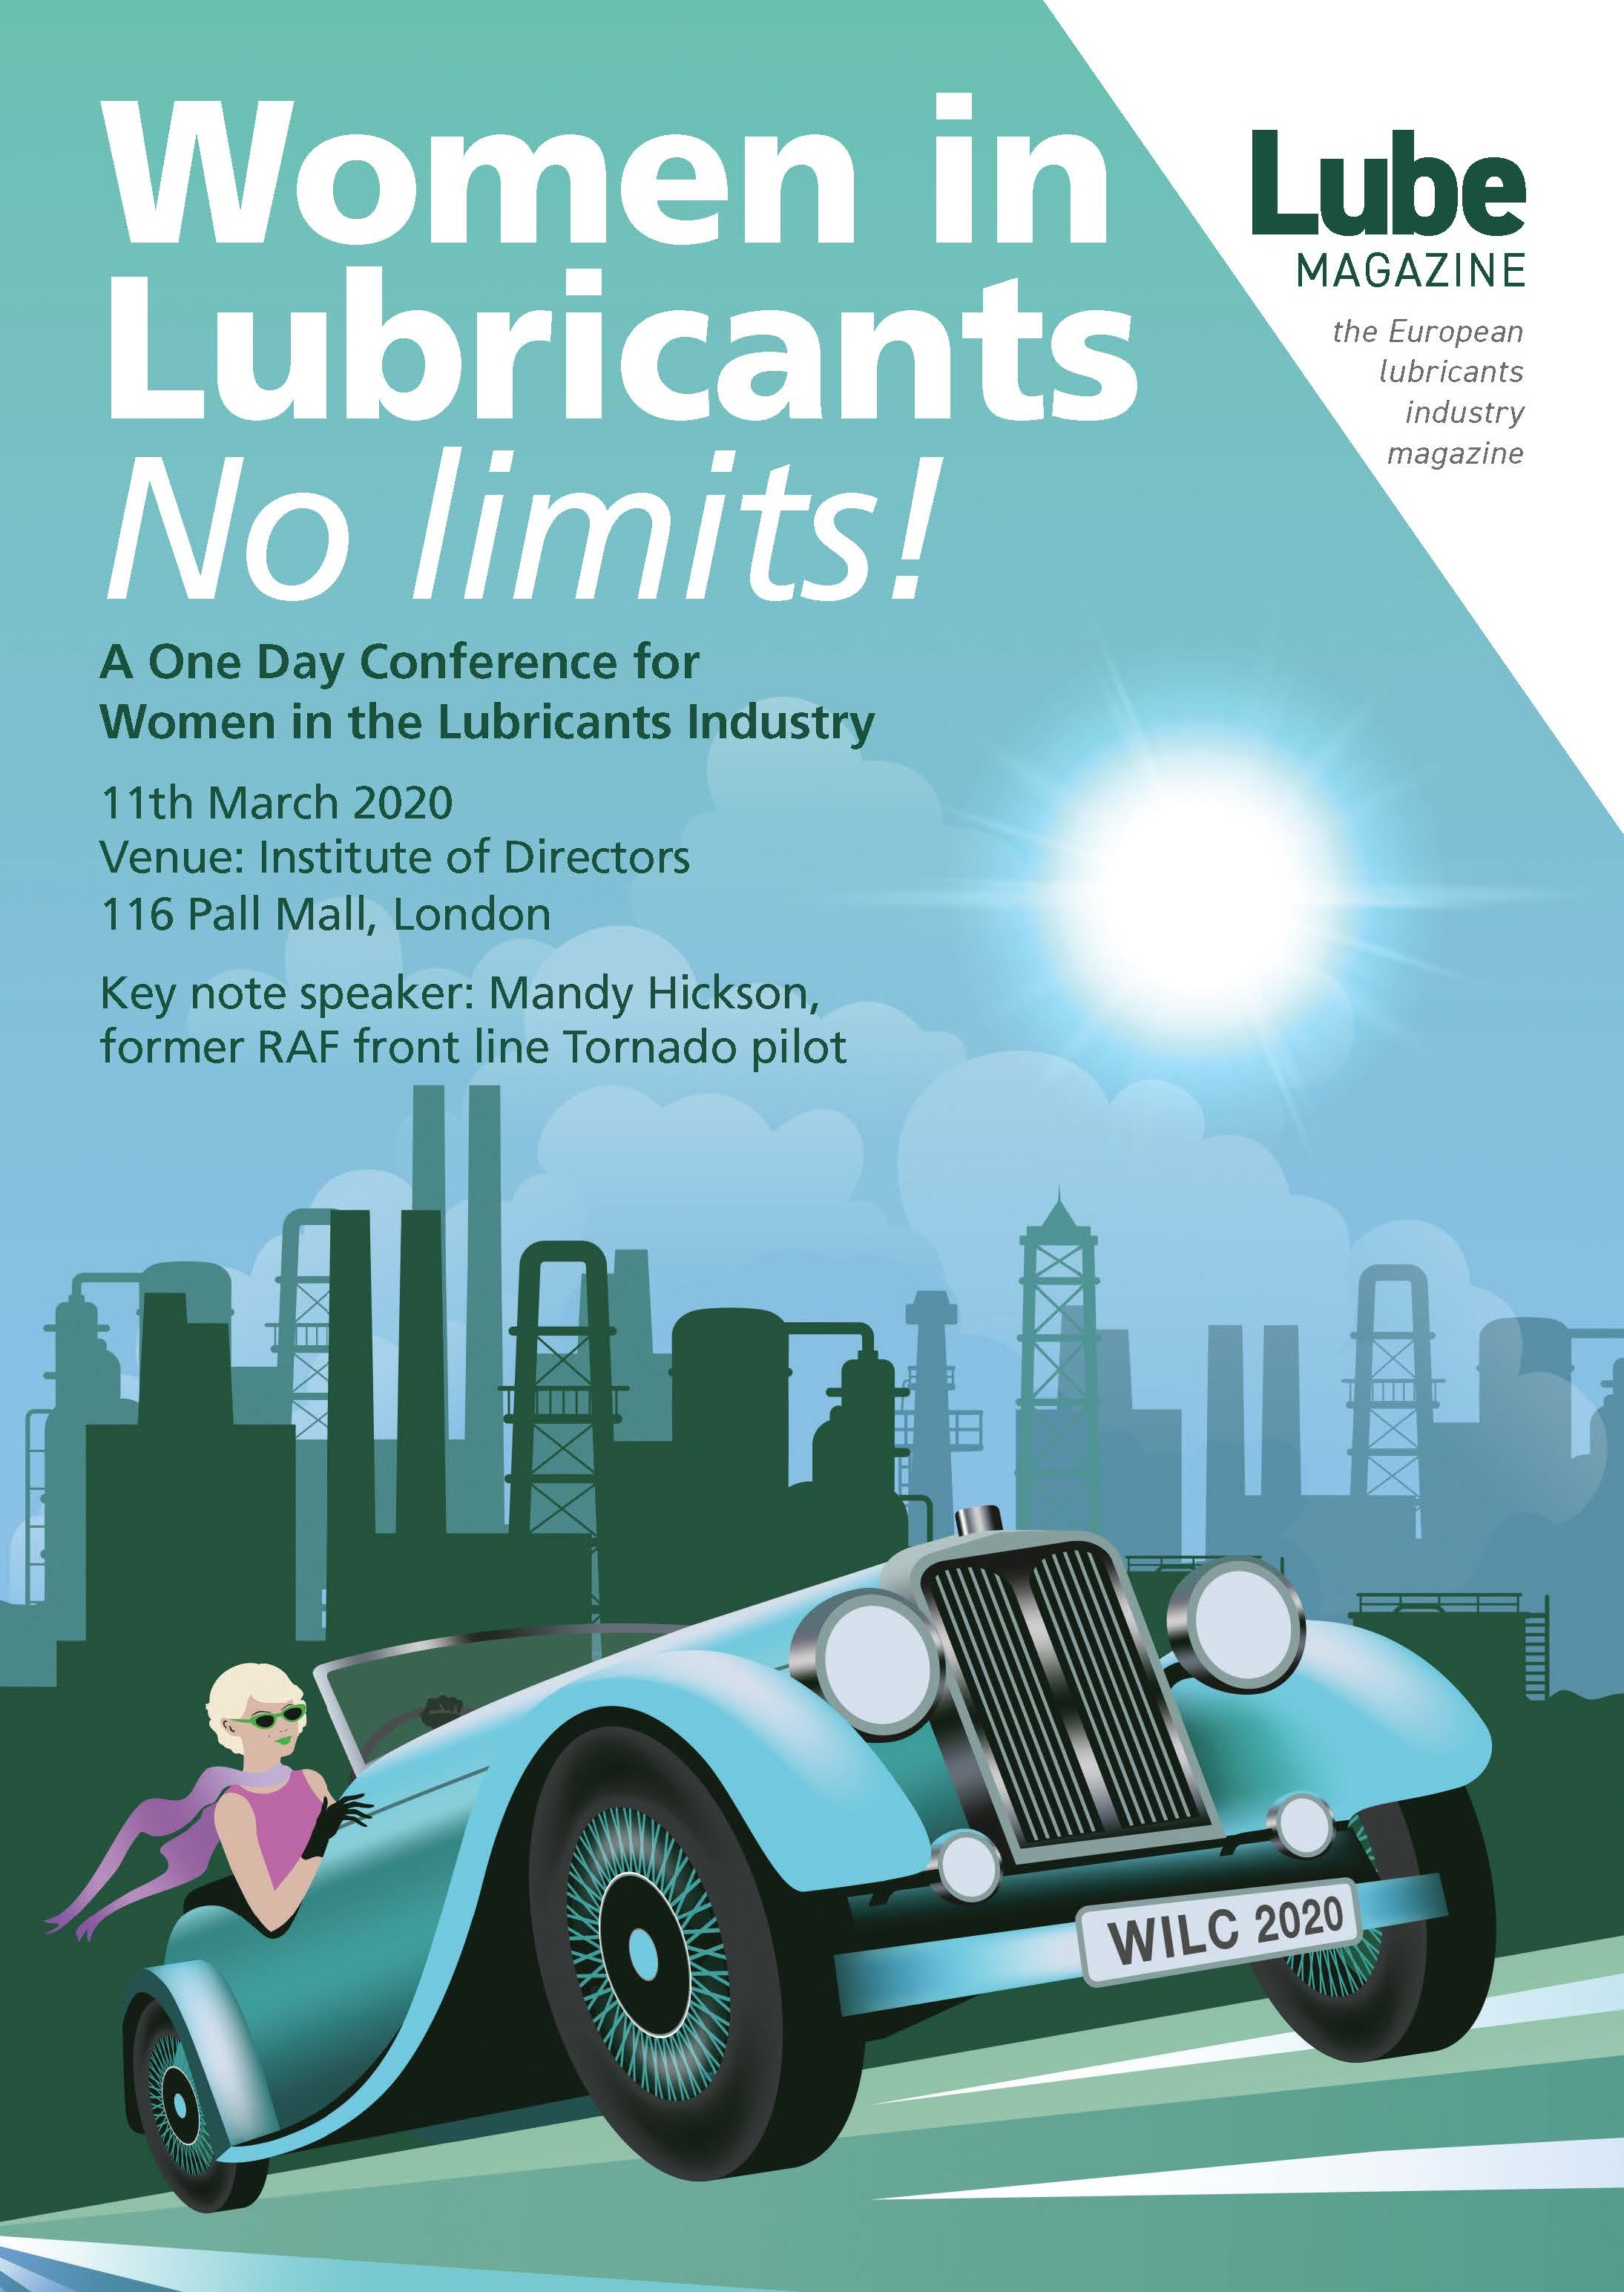 Women in Lubricants A4 Poster (Print)cropped